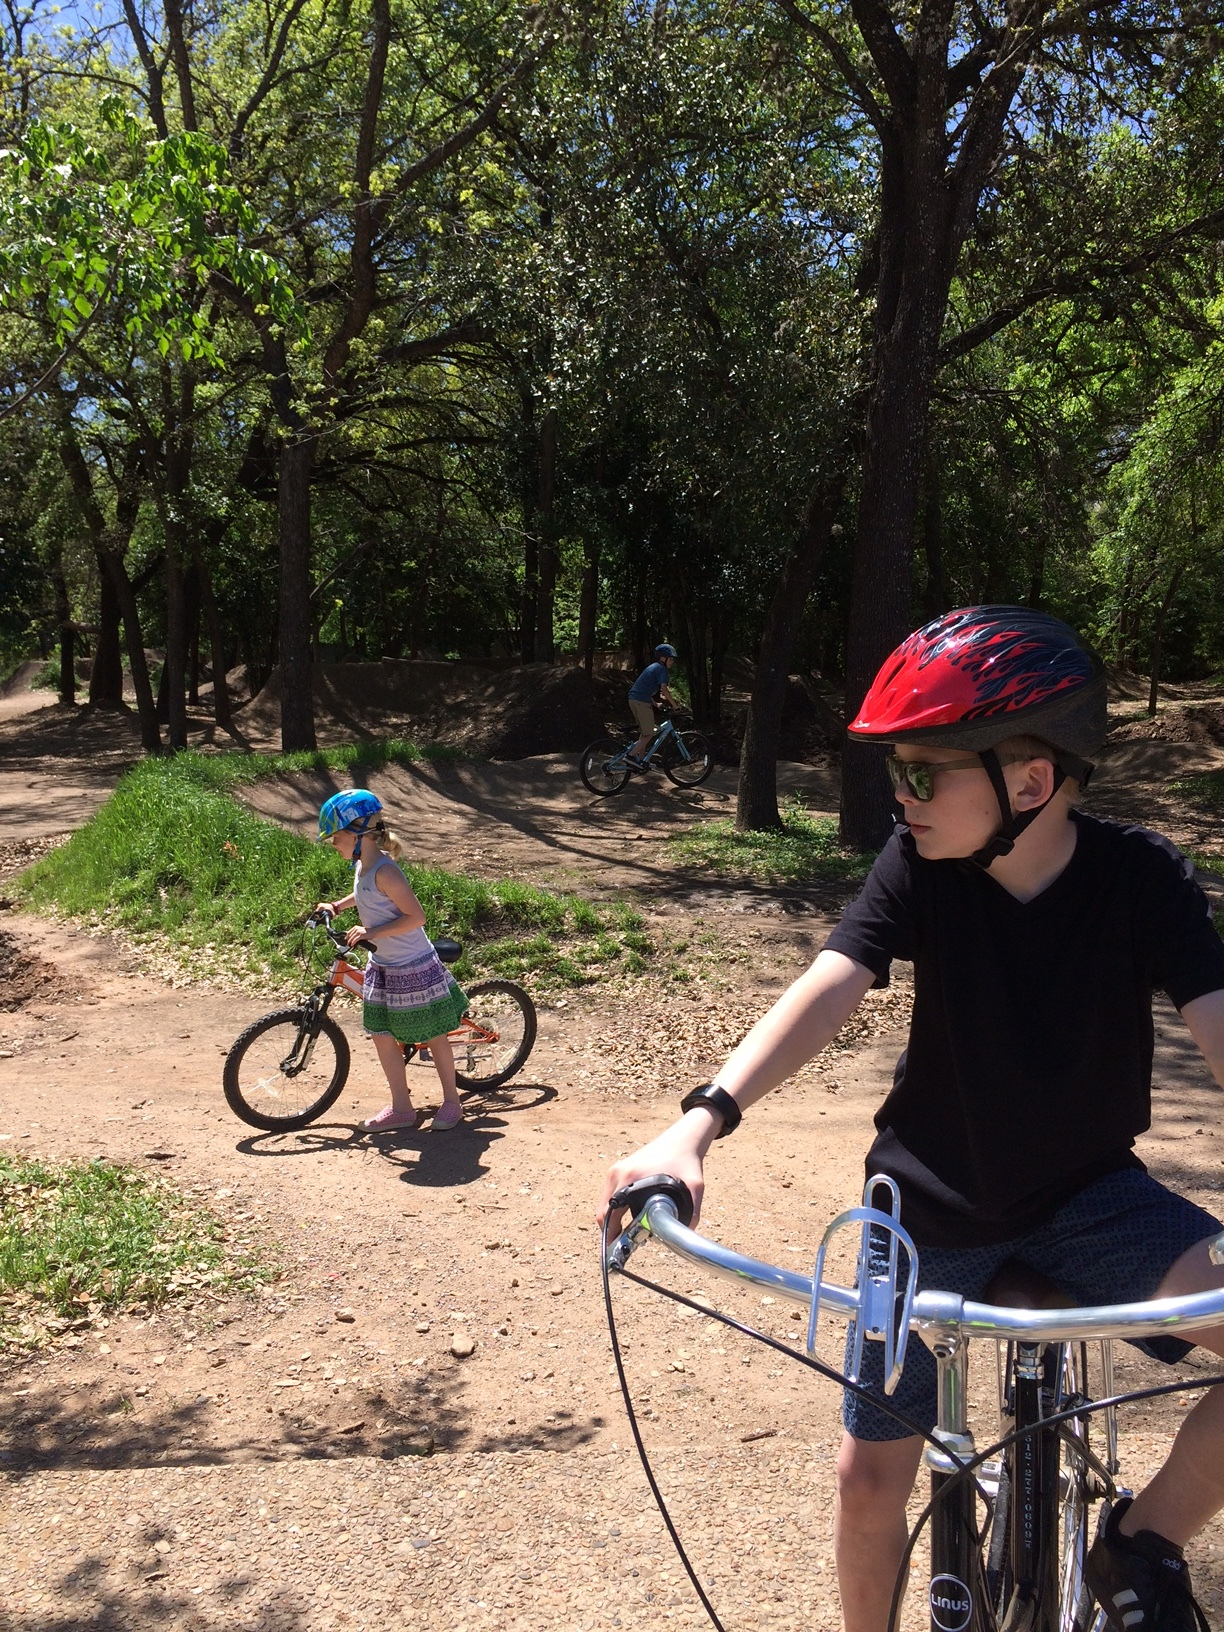 Showing the kiddos the 9nth Street BMX Park